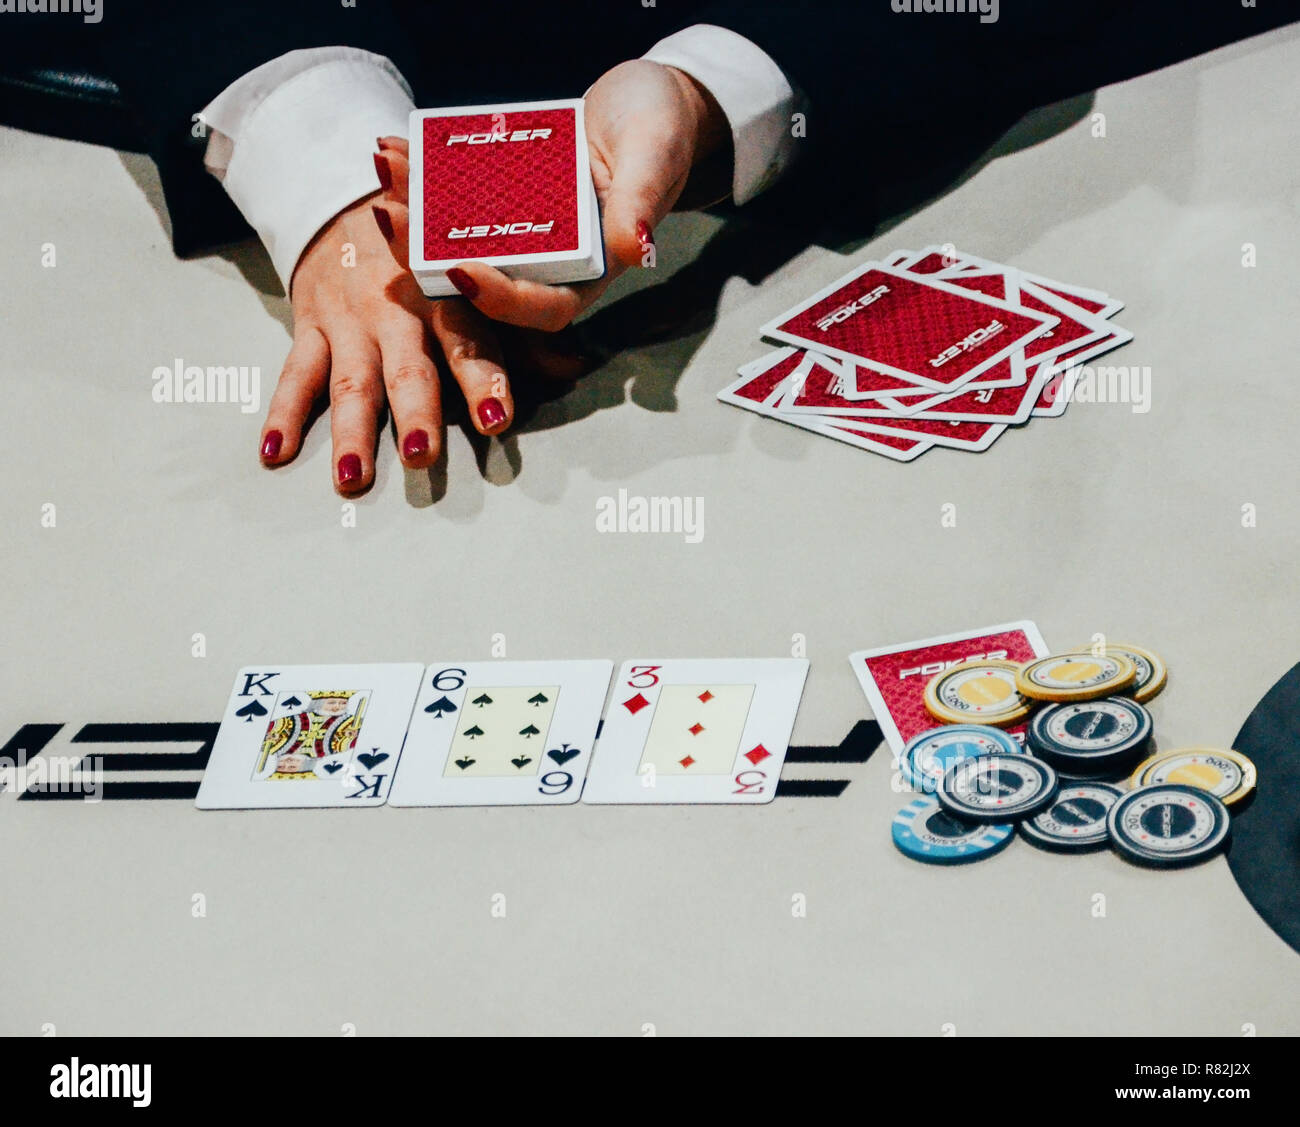 Close up of female dealer with deck of cards on her hand after dealing 3 cards on the table, with poker chips on the side - tournament texas hold 'em  - Stock Image